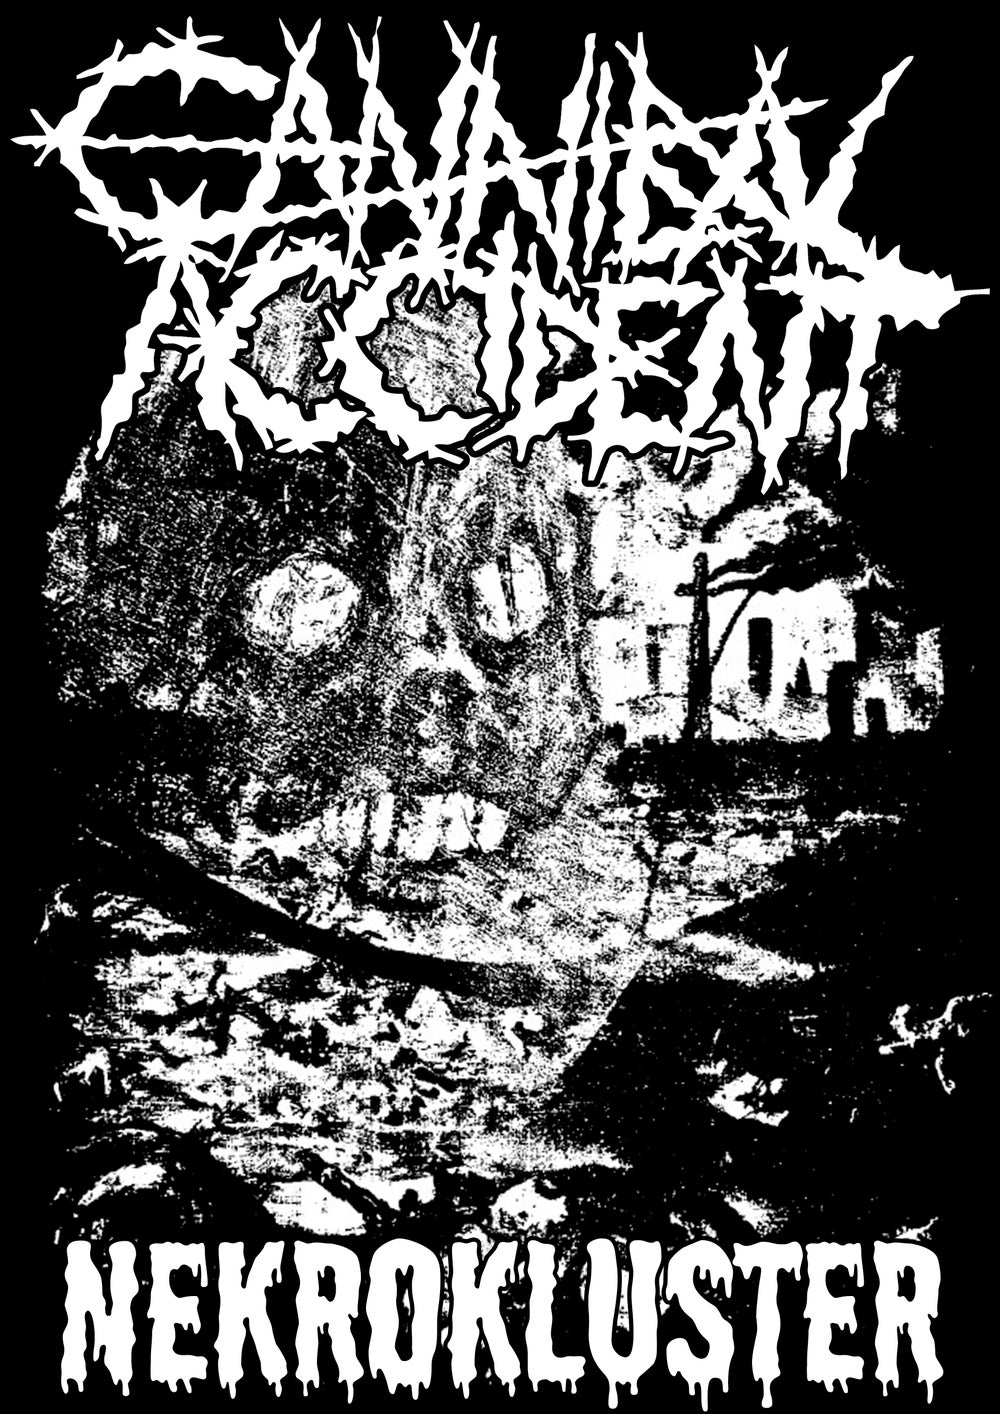 Cannibal Accident Exclusive Bundle - Nekrokluster - White Tape + T-Shirt